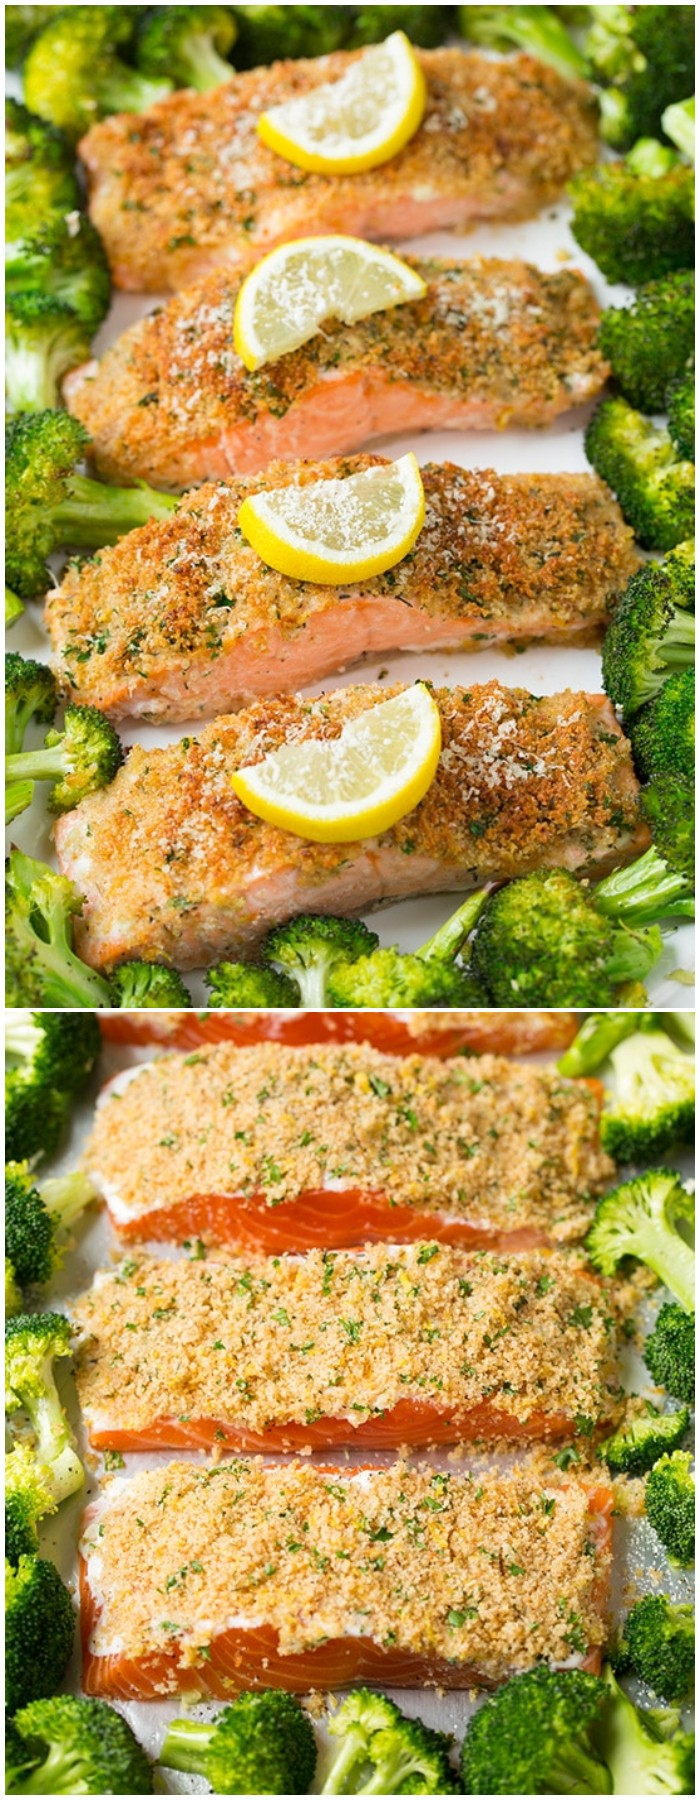 Parmesan Crusted Salmon with Roasted Broccoli